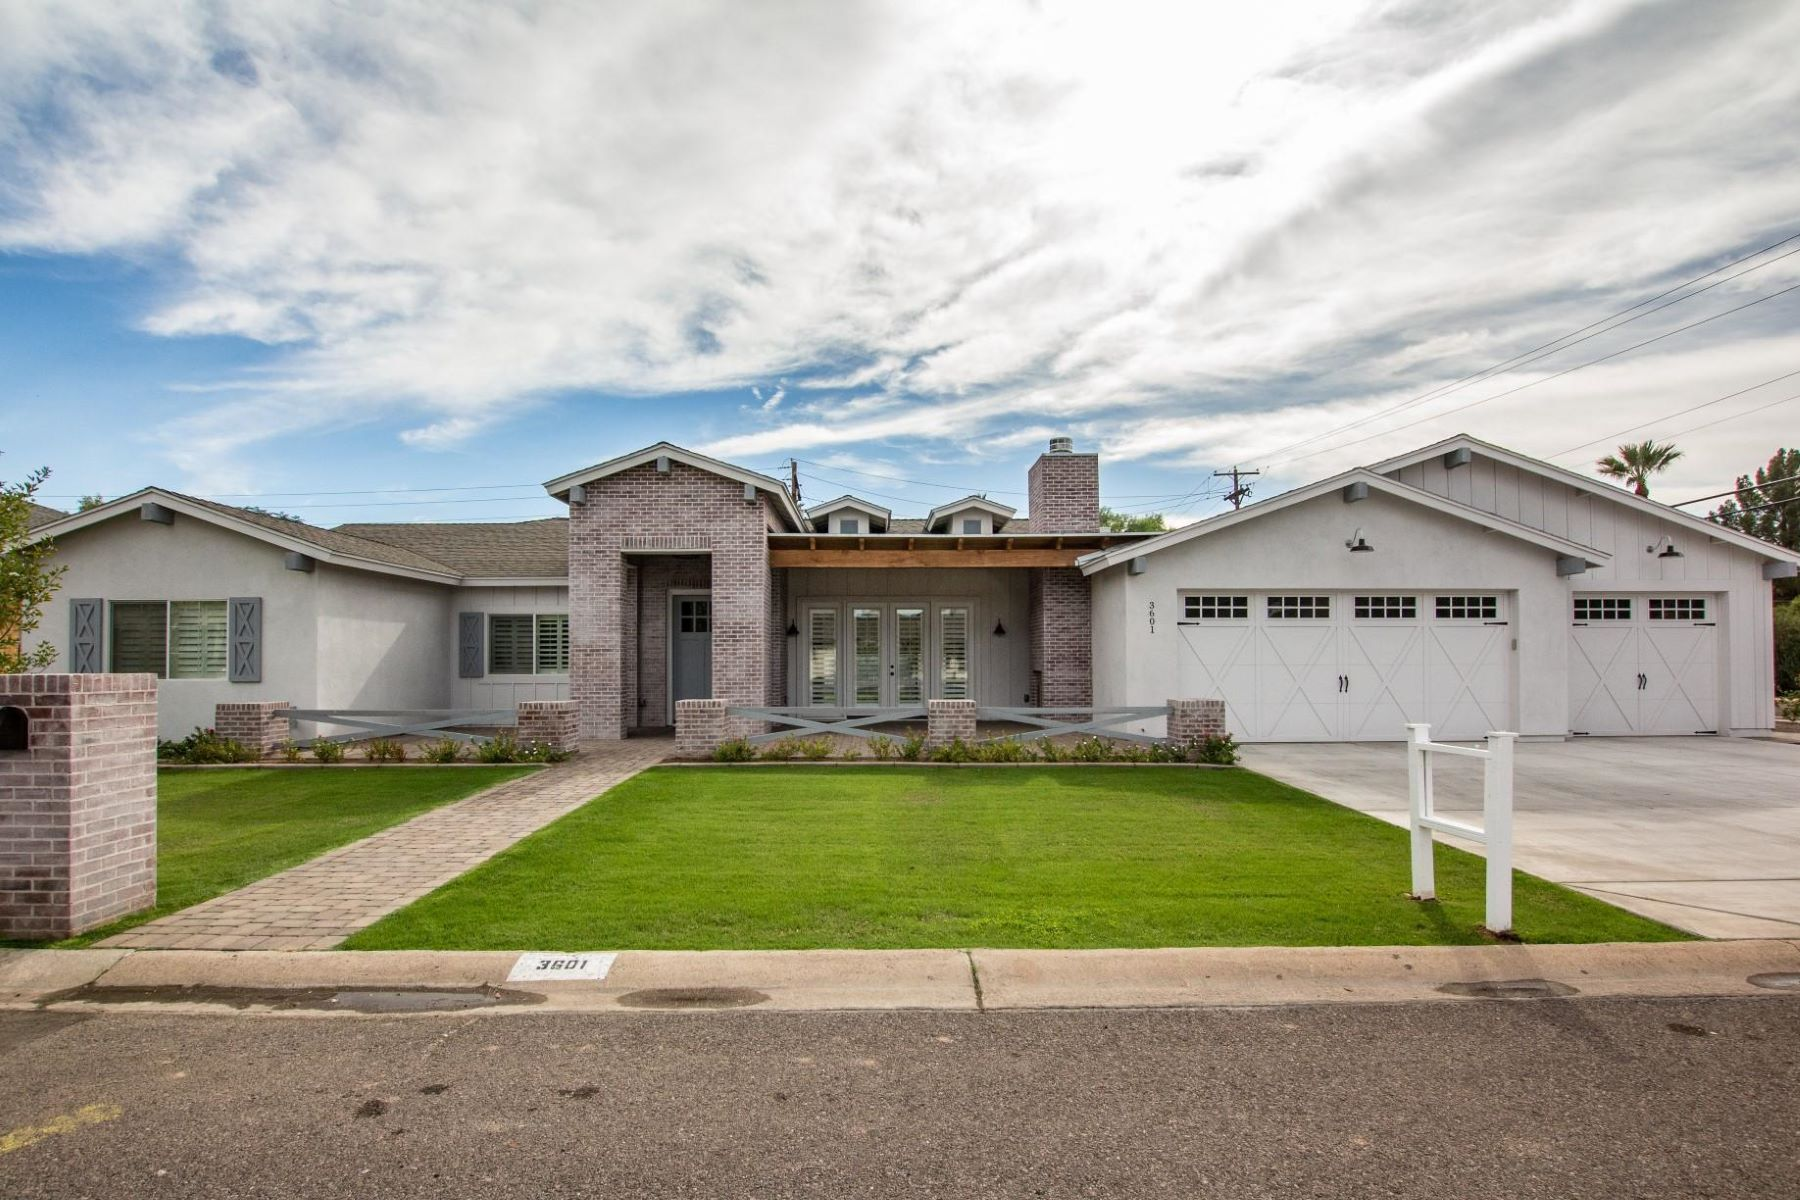 Single Family Home for Sale at Arcadia home with stunning curb appeal 3601 E Hazelwood St, Phoenix, Arizona, 85018 United States